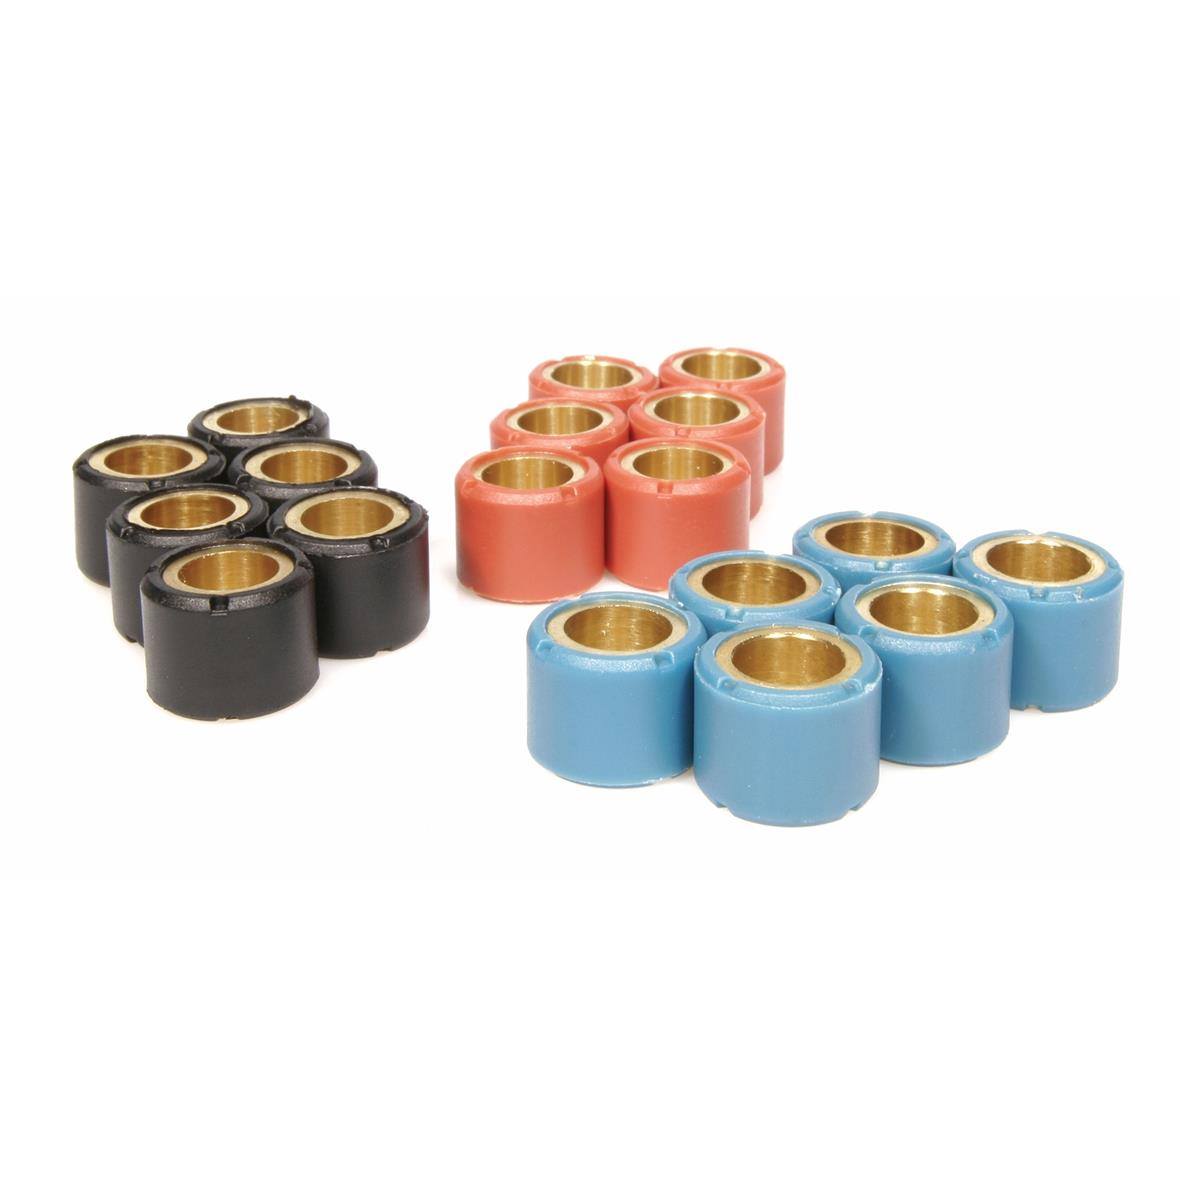 Product Image for 'Variator Rollers RMS 15x12 mm 5,5gTitle'